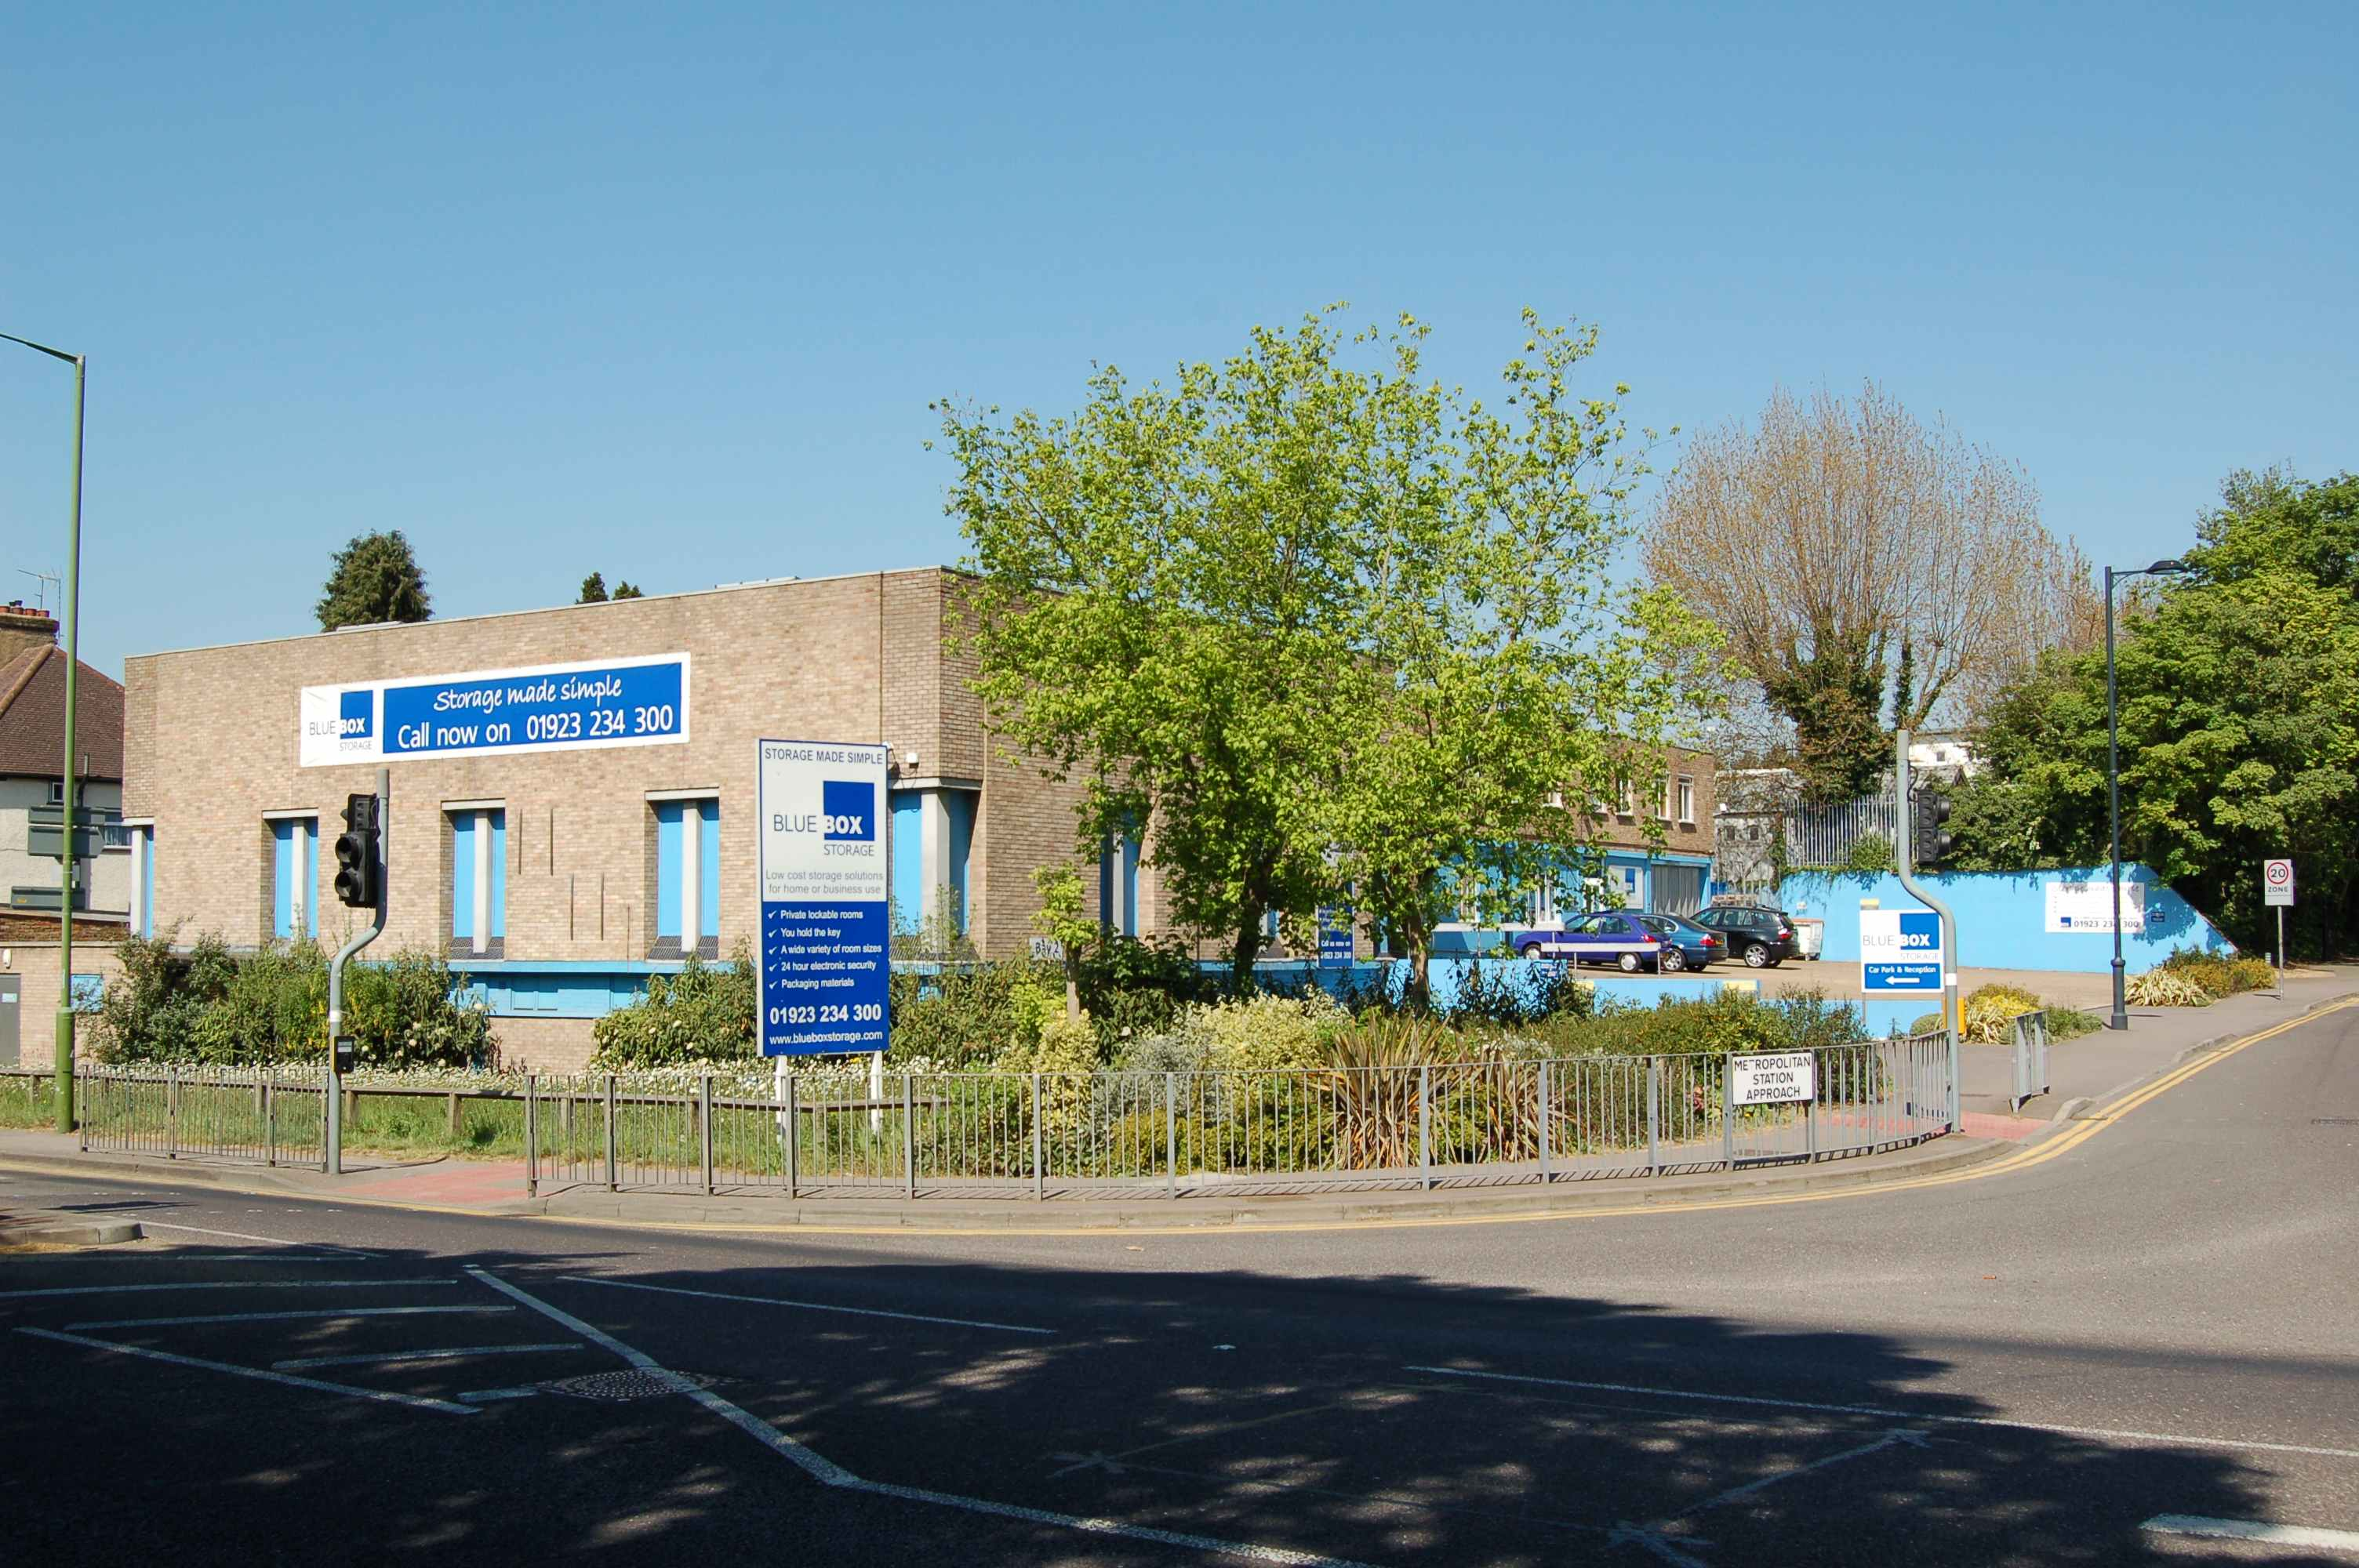 Find Blue Box Storage Ltd in Watford, WD Get contact details, videos, photos, opening times and map directions. Search for local Storage Units near you on Yell.